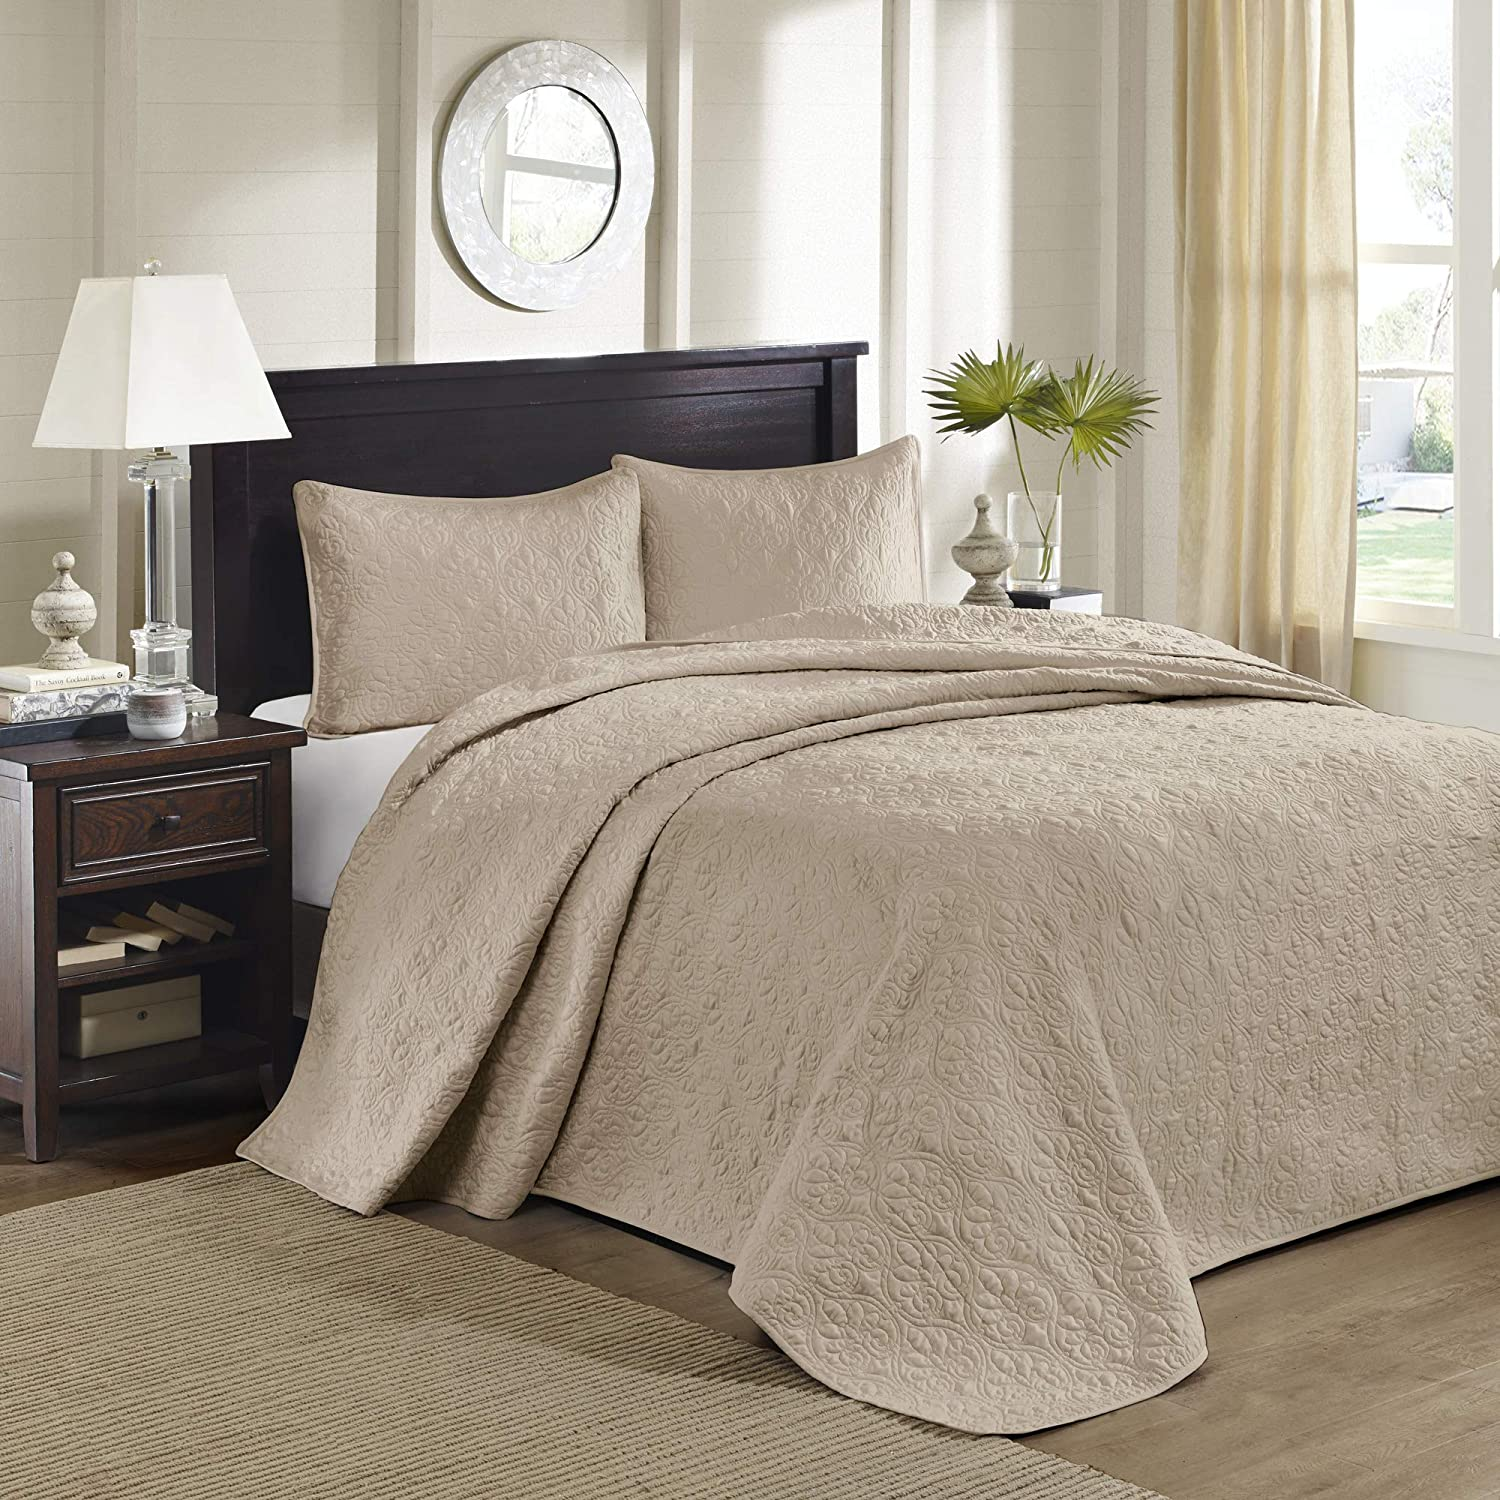 Khaki Oversize King Madison Park Quebec Dusty Pale bluee 3-Piece Quilted King Coverlet Set—For King or Cal King Bed –Ideal For Warm Climate Room Décor or Add-on For Extra Warmth